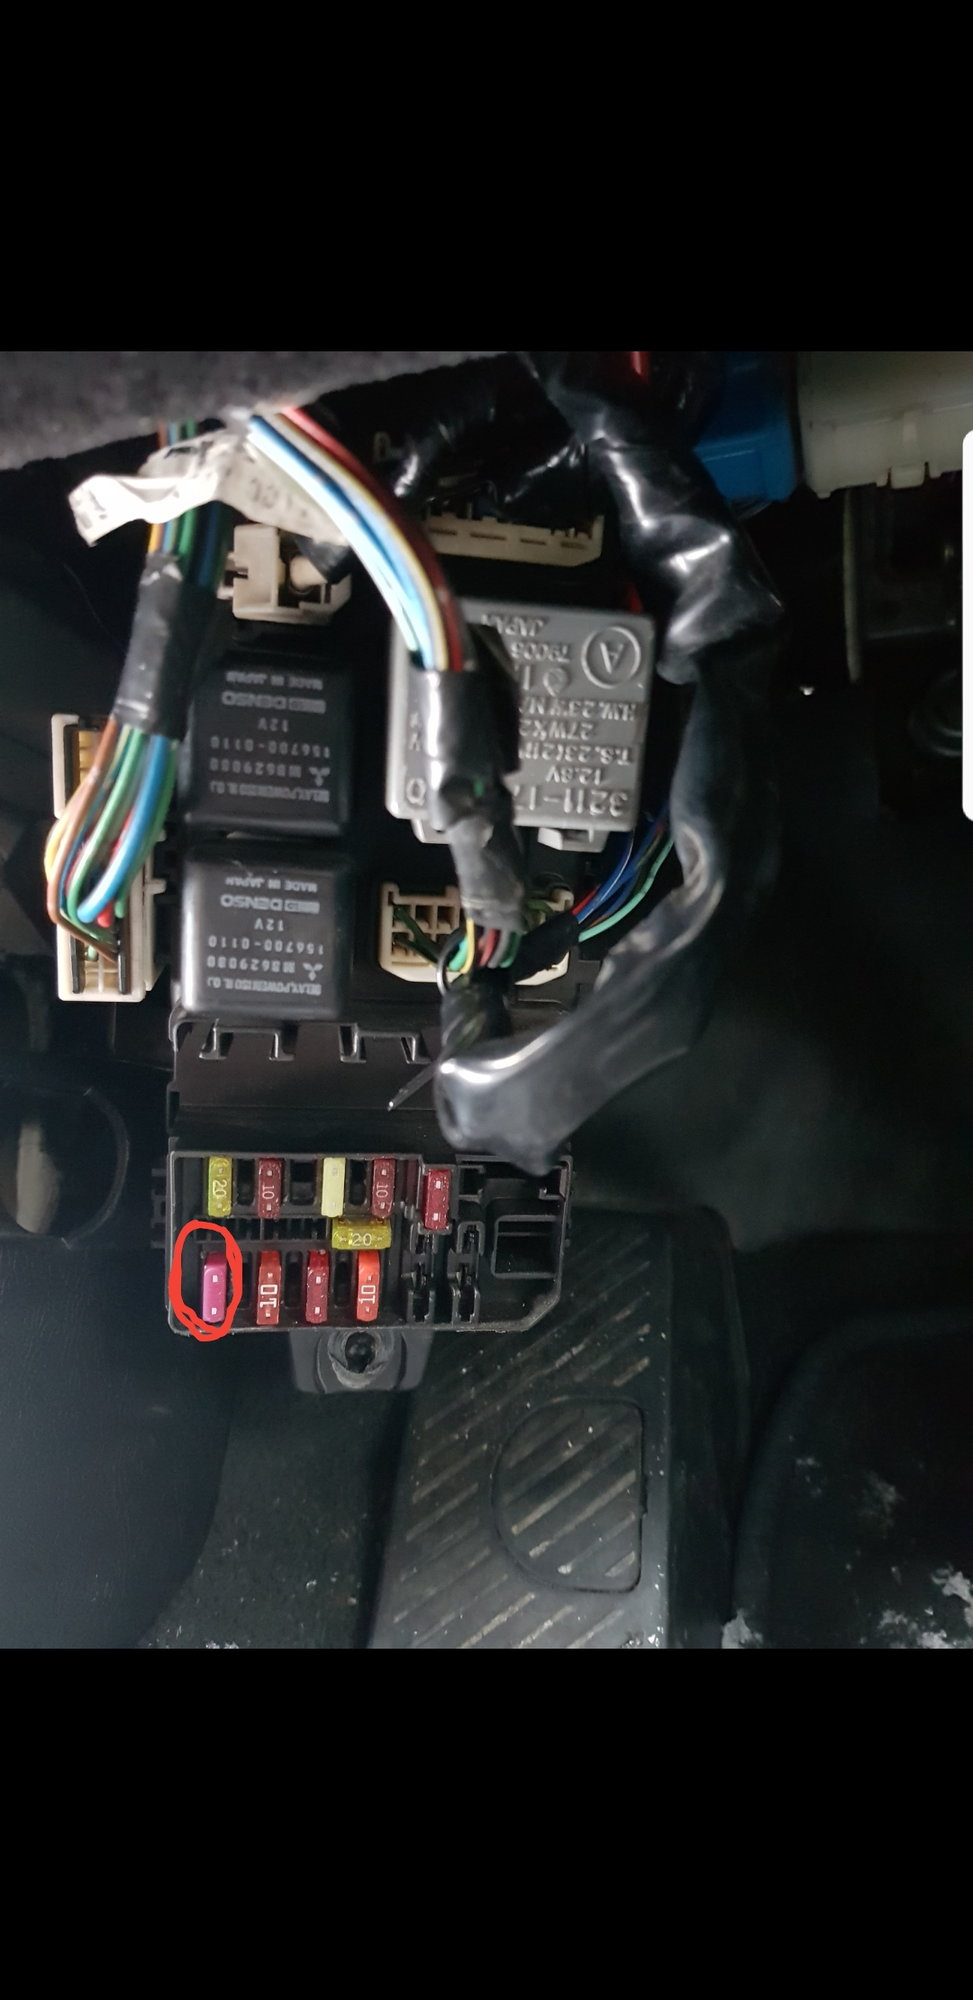 hight resolution of it is a 10amp fuse in the lower left corner in the fusebox under the dash can someone please tell me what that fuse does